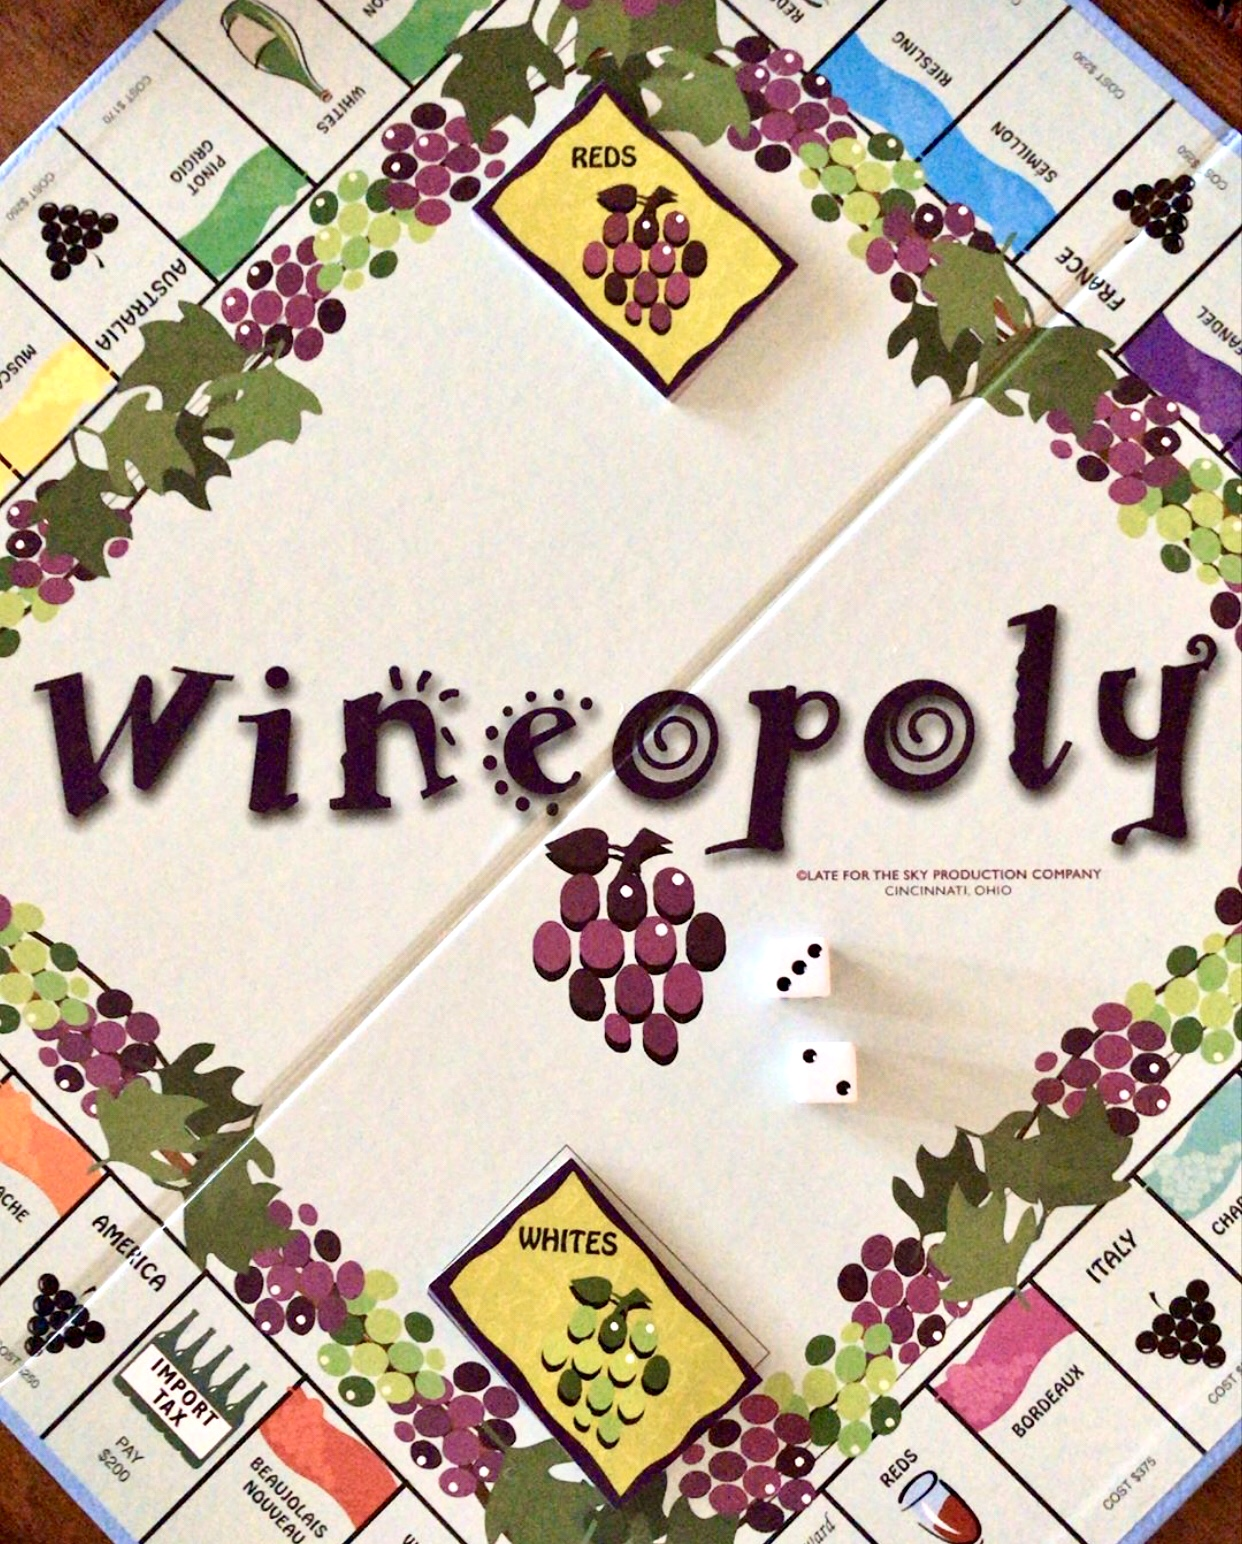 Winopoly